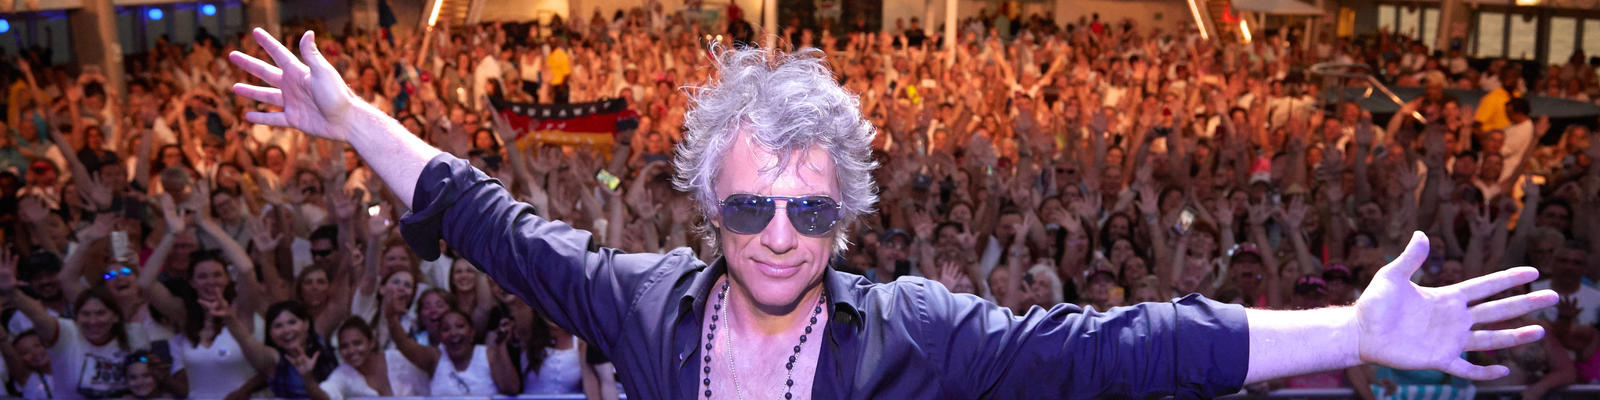 Jon Bon Jovi posing onstage, with hundreds of fans in the background, on the Bon Jovi cruise